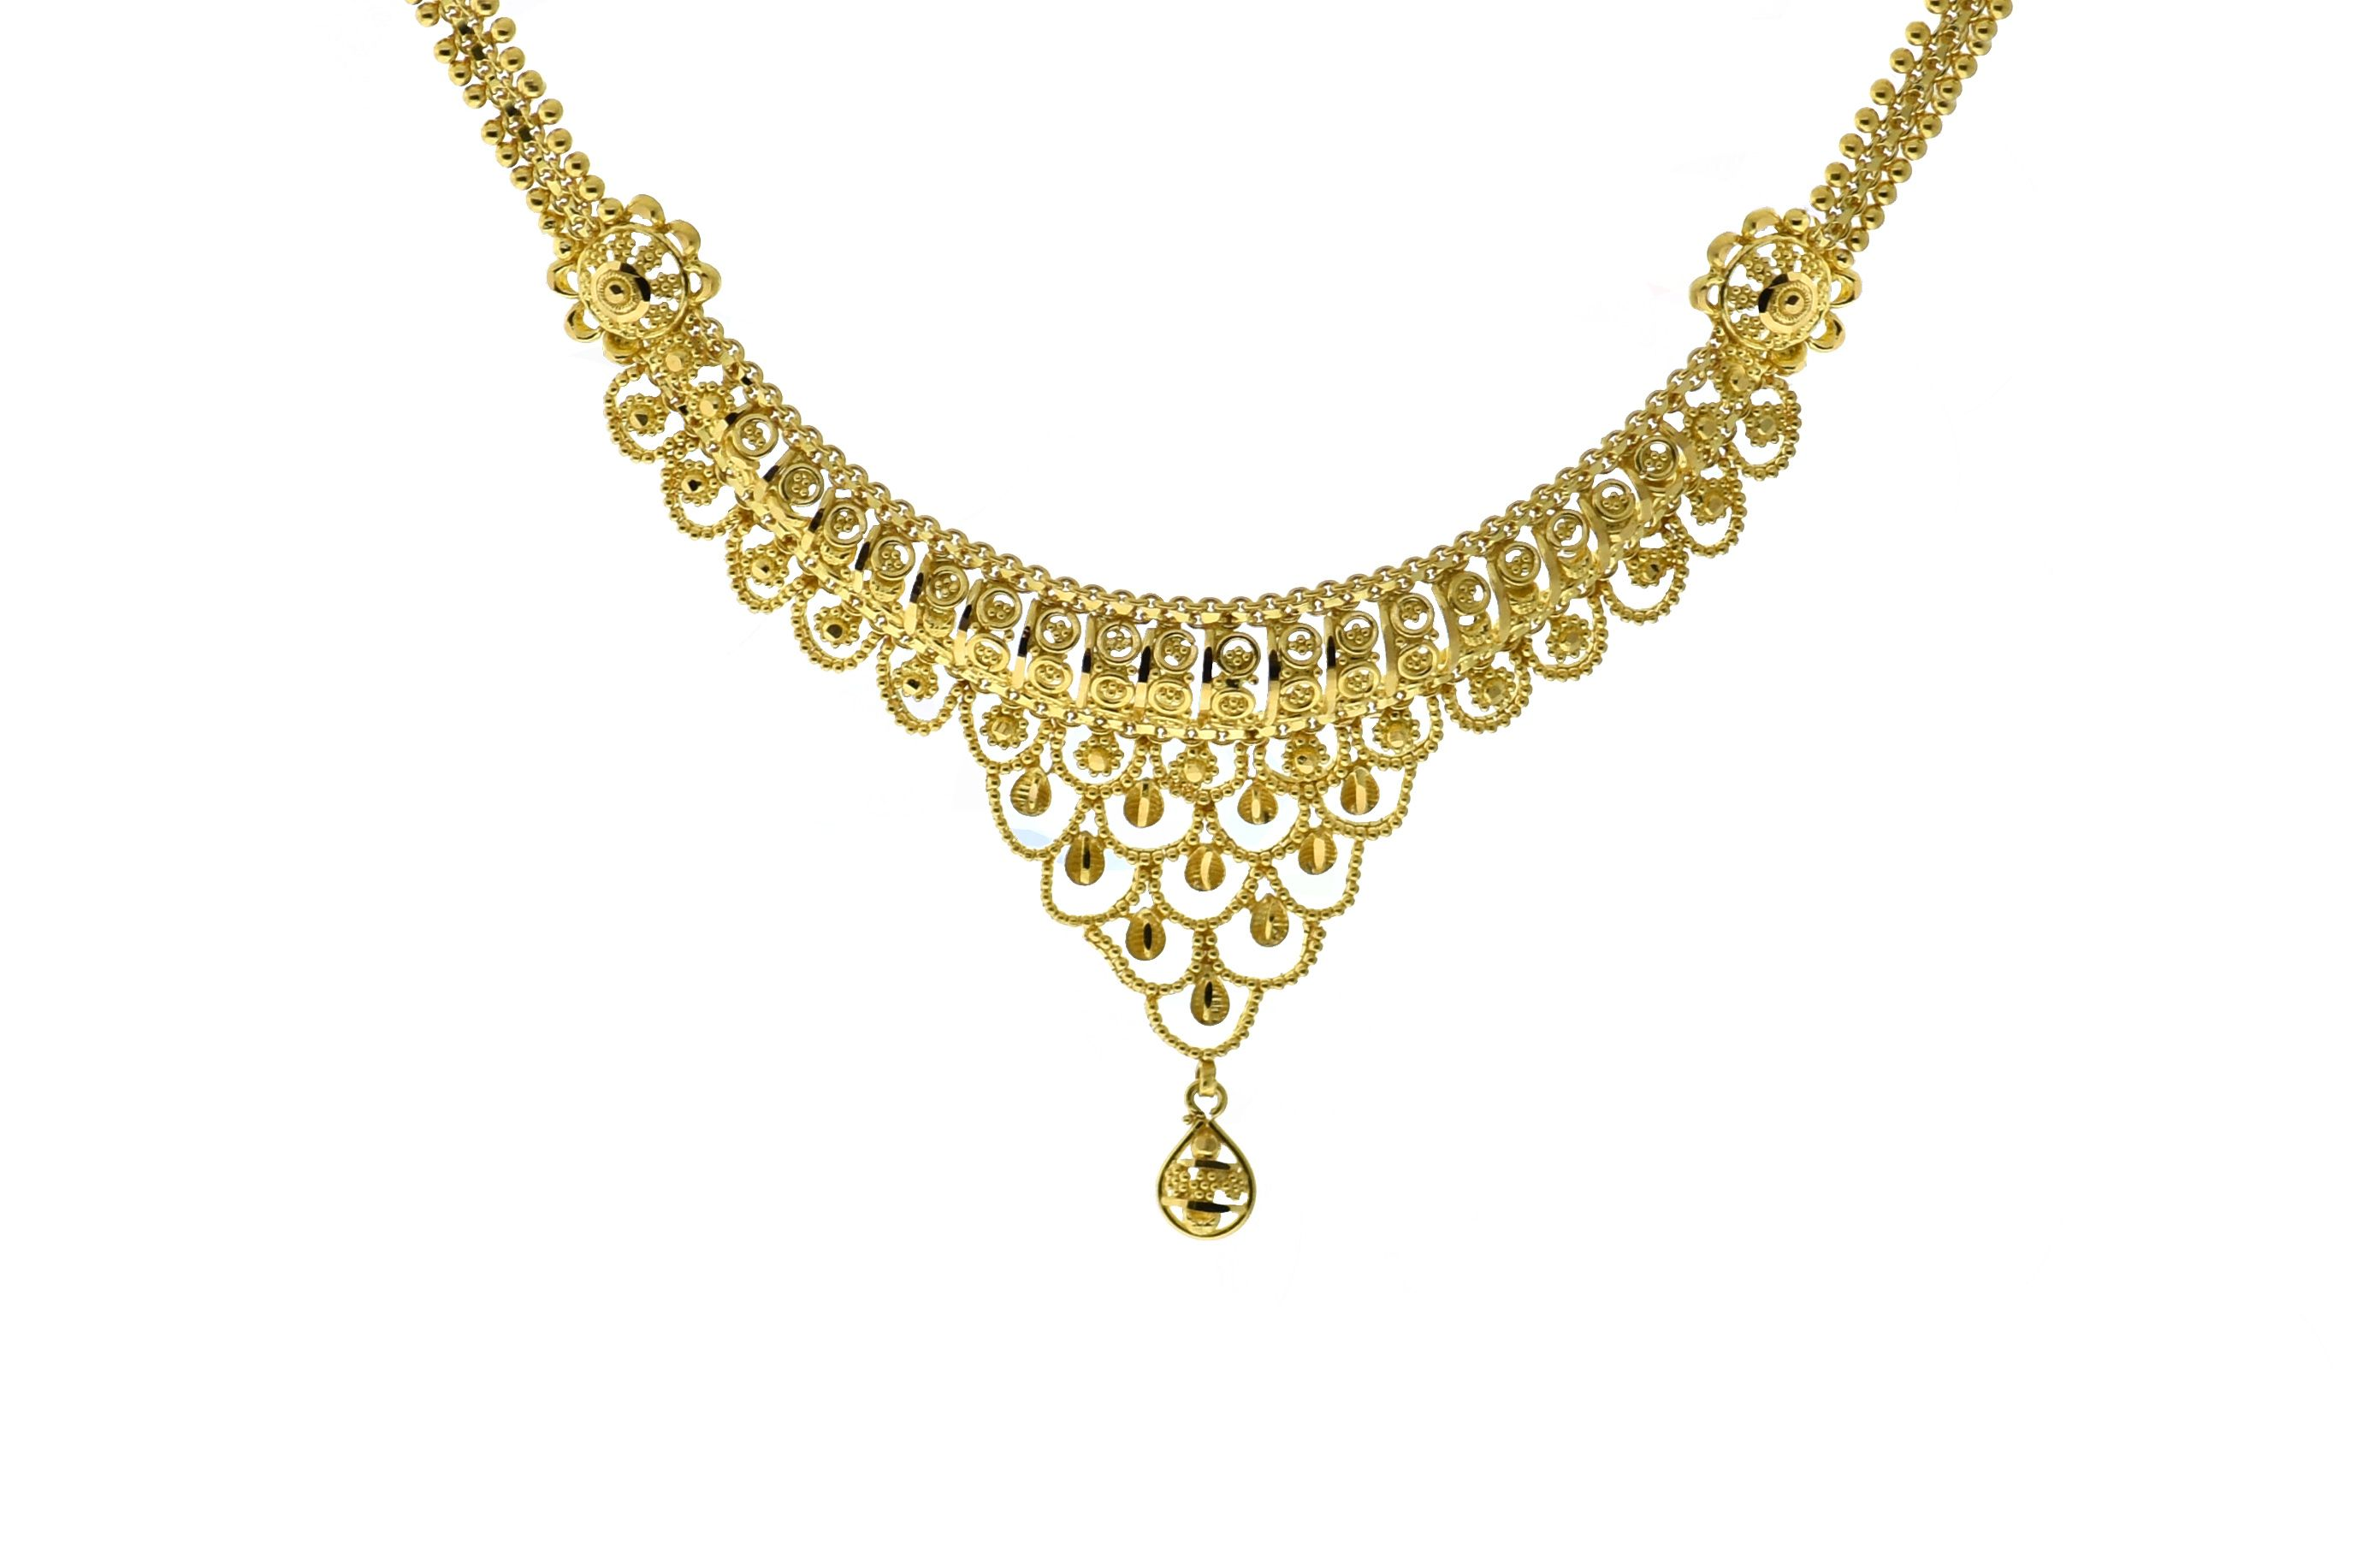 13+ Indian jewelry in charlotte nc ideas